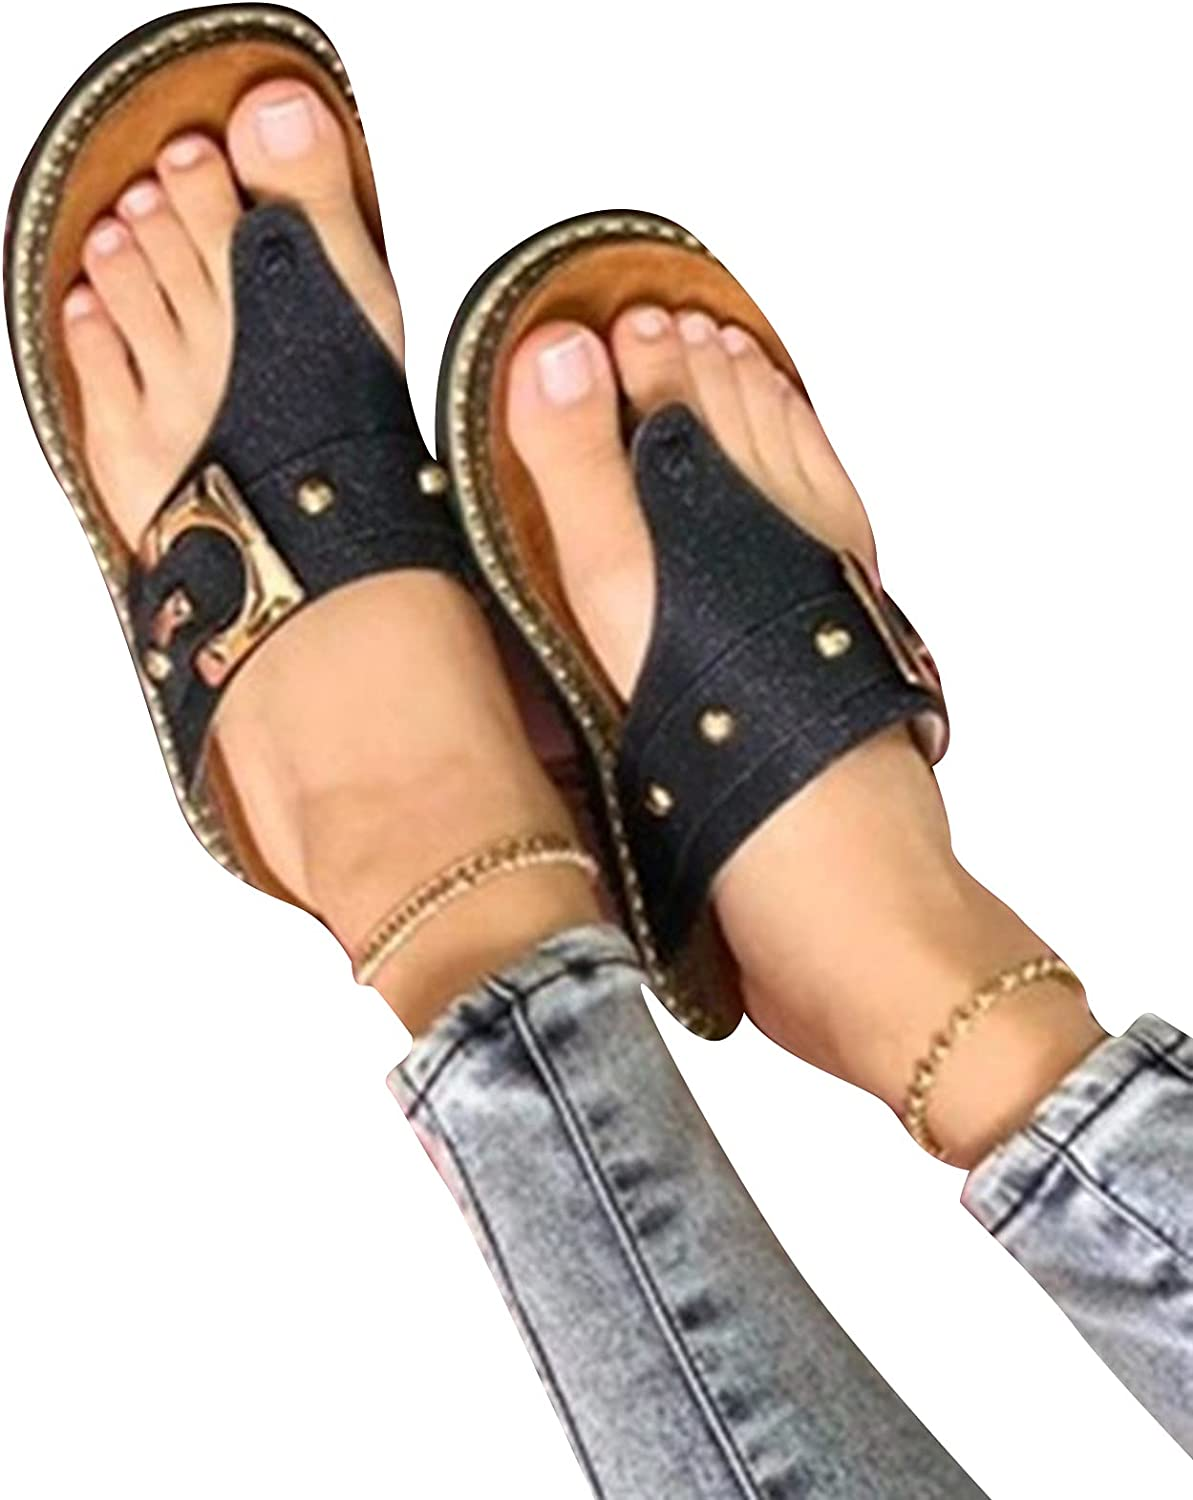 DREAMOSA Women Casual Sandals with Toe Post Design Durable Lightweight Long Lasting for Daily Life Hiking Outdoors Walking,Women's Fashion Sandals Arch Support Sandals